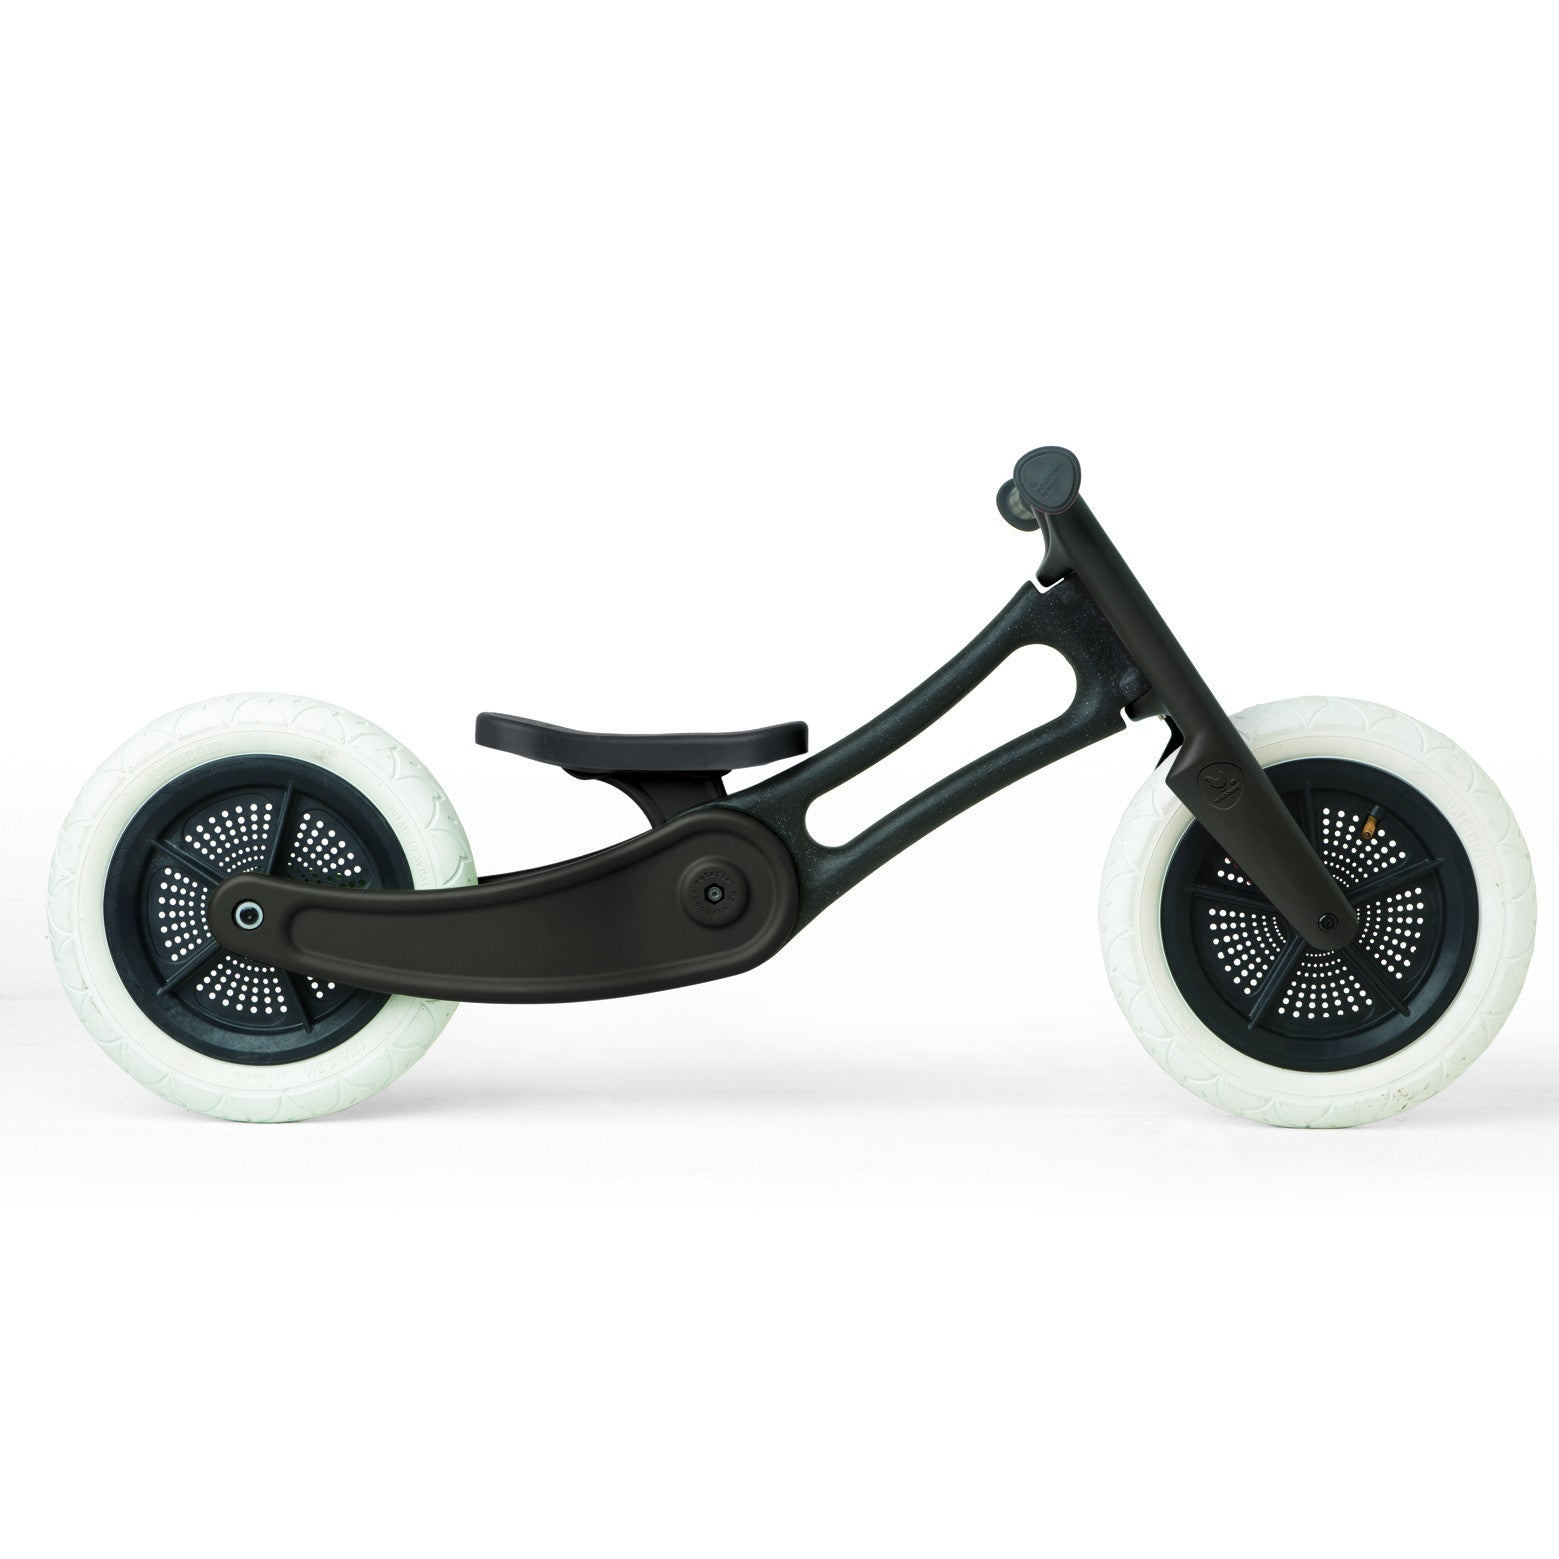 Recycled Balance Trike Bicycle for 1-6 year olds - by Wishbone - Little Citizens Boutique  - 1